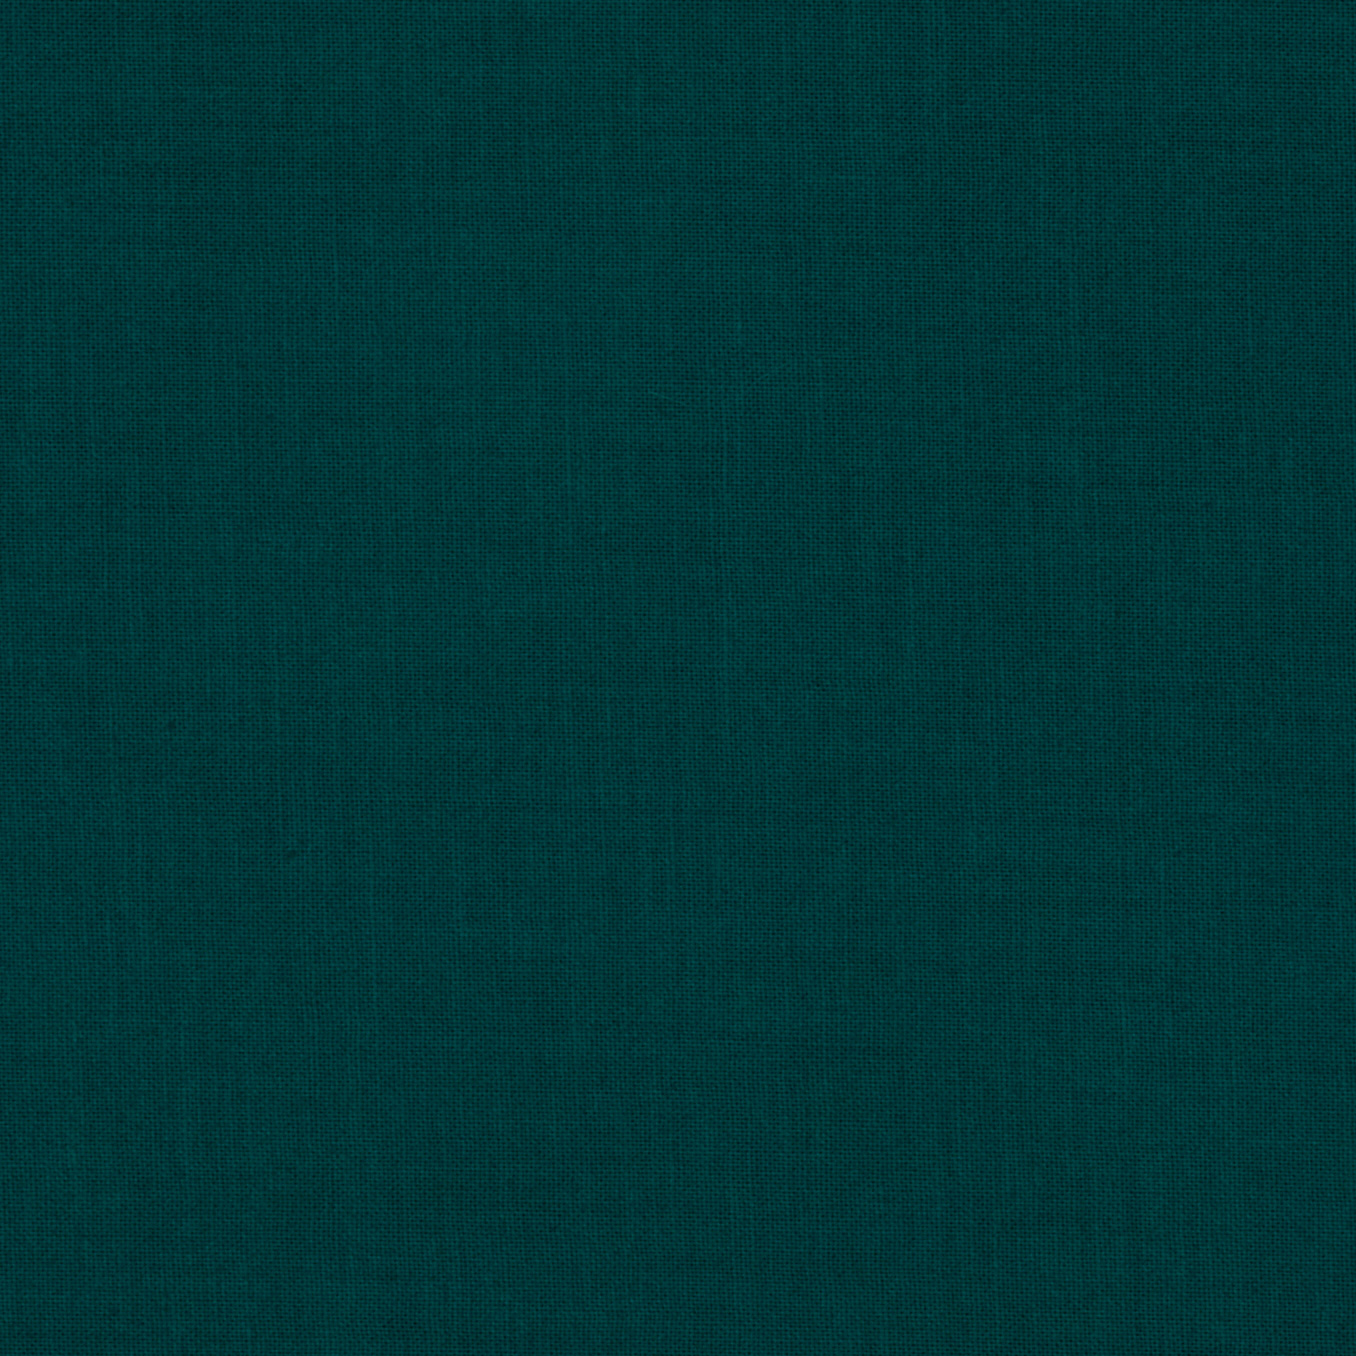 Michael Miller Cotton Couture Broadcloth Teal Fabric